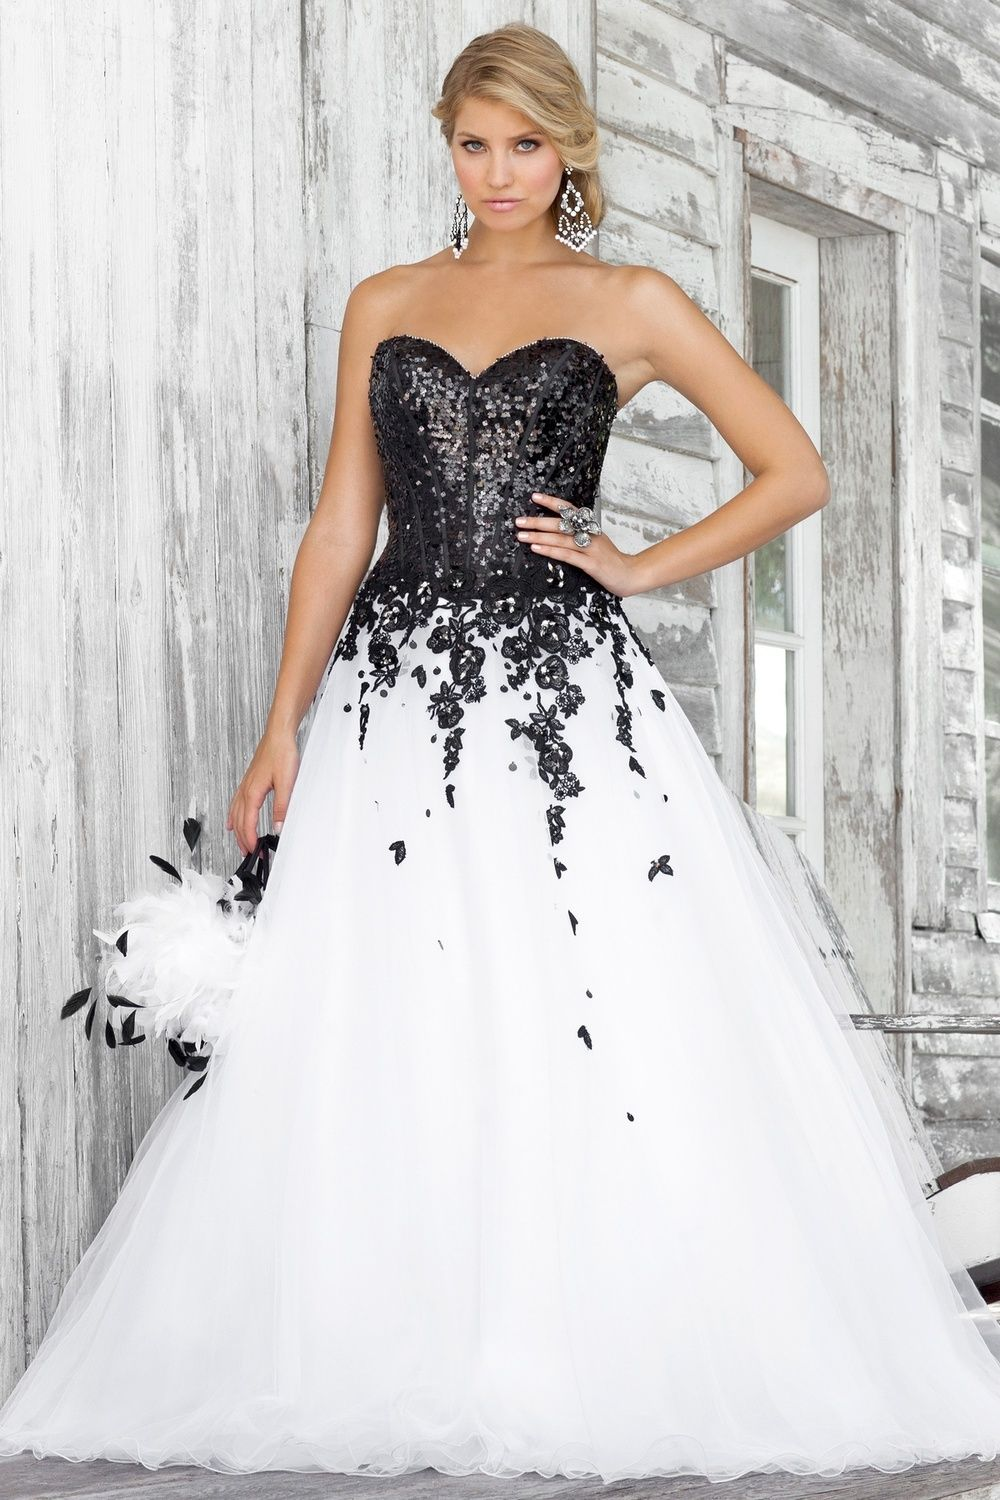 Plus size white wedding dresses  Black and White Wedding Dress With Lace Sequins Perfect for Second